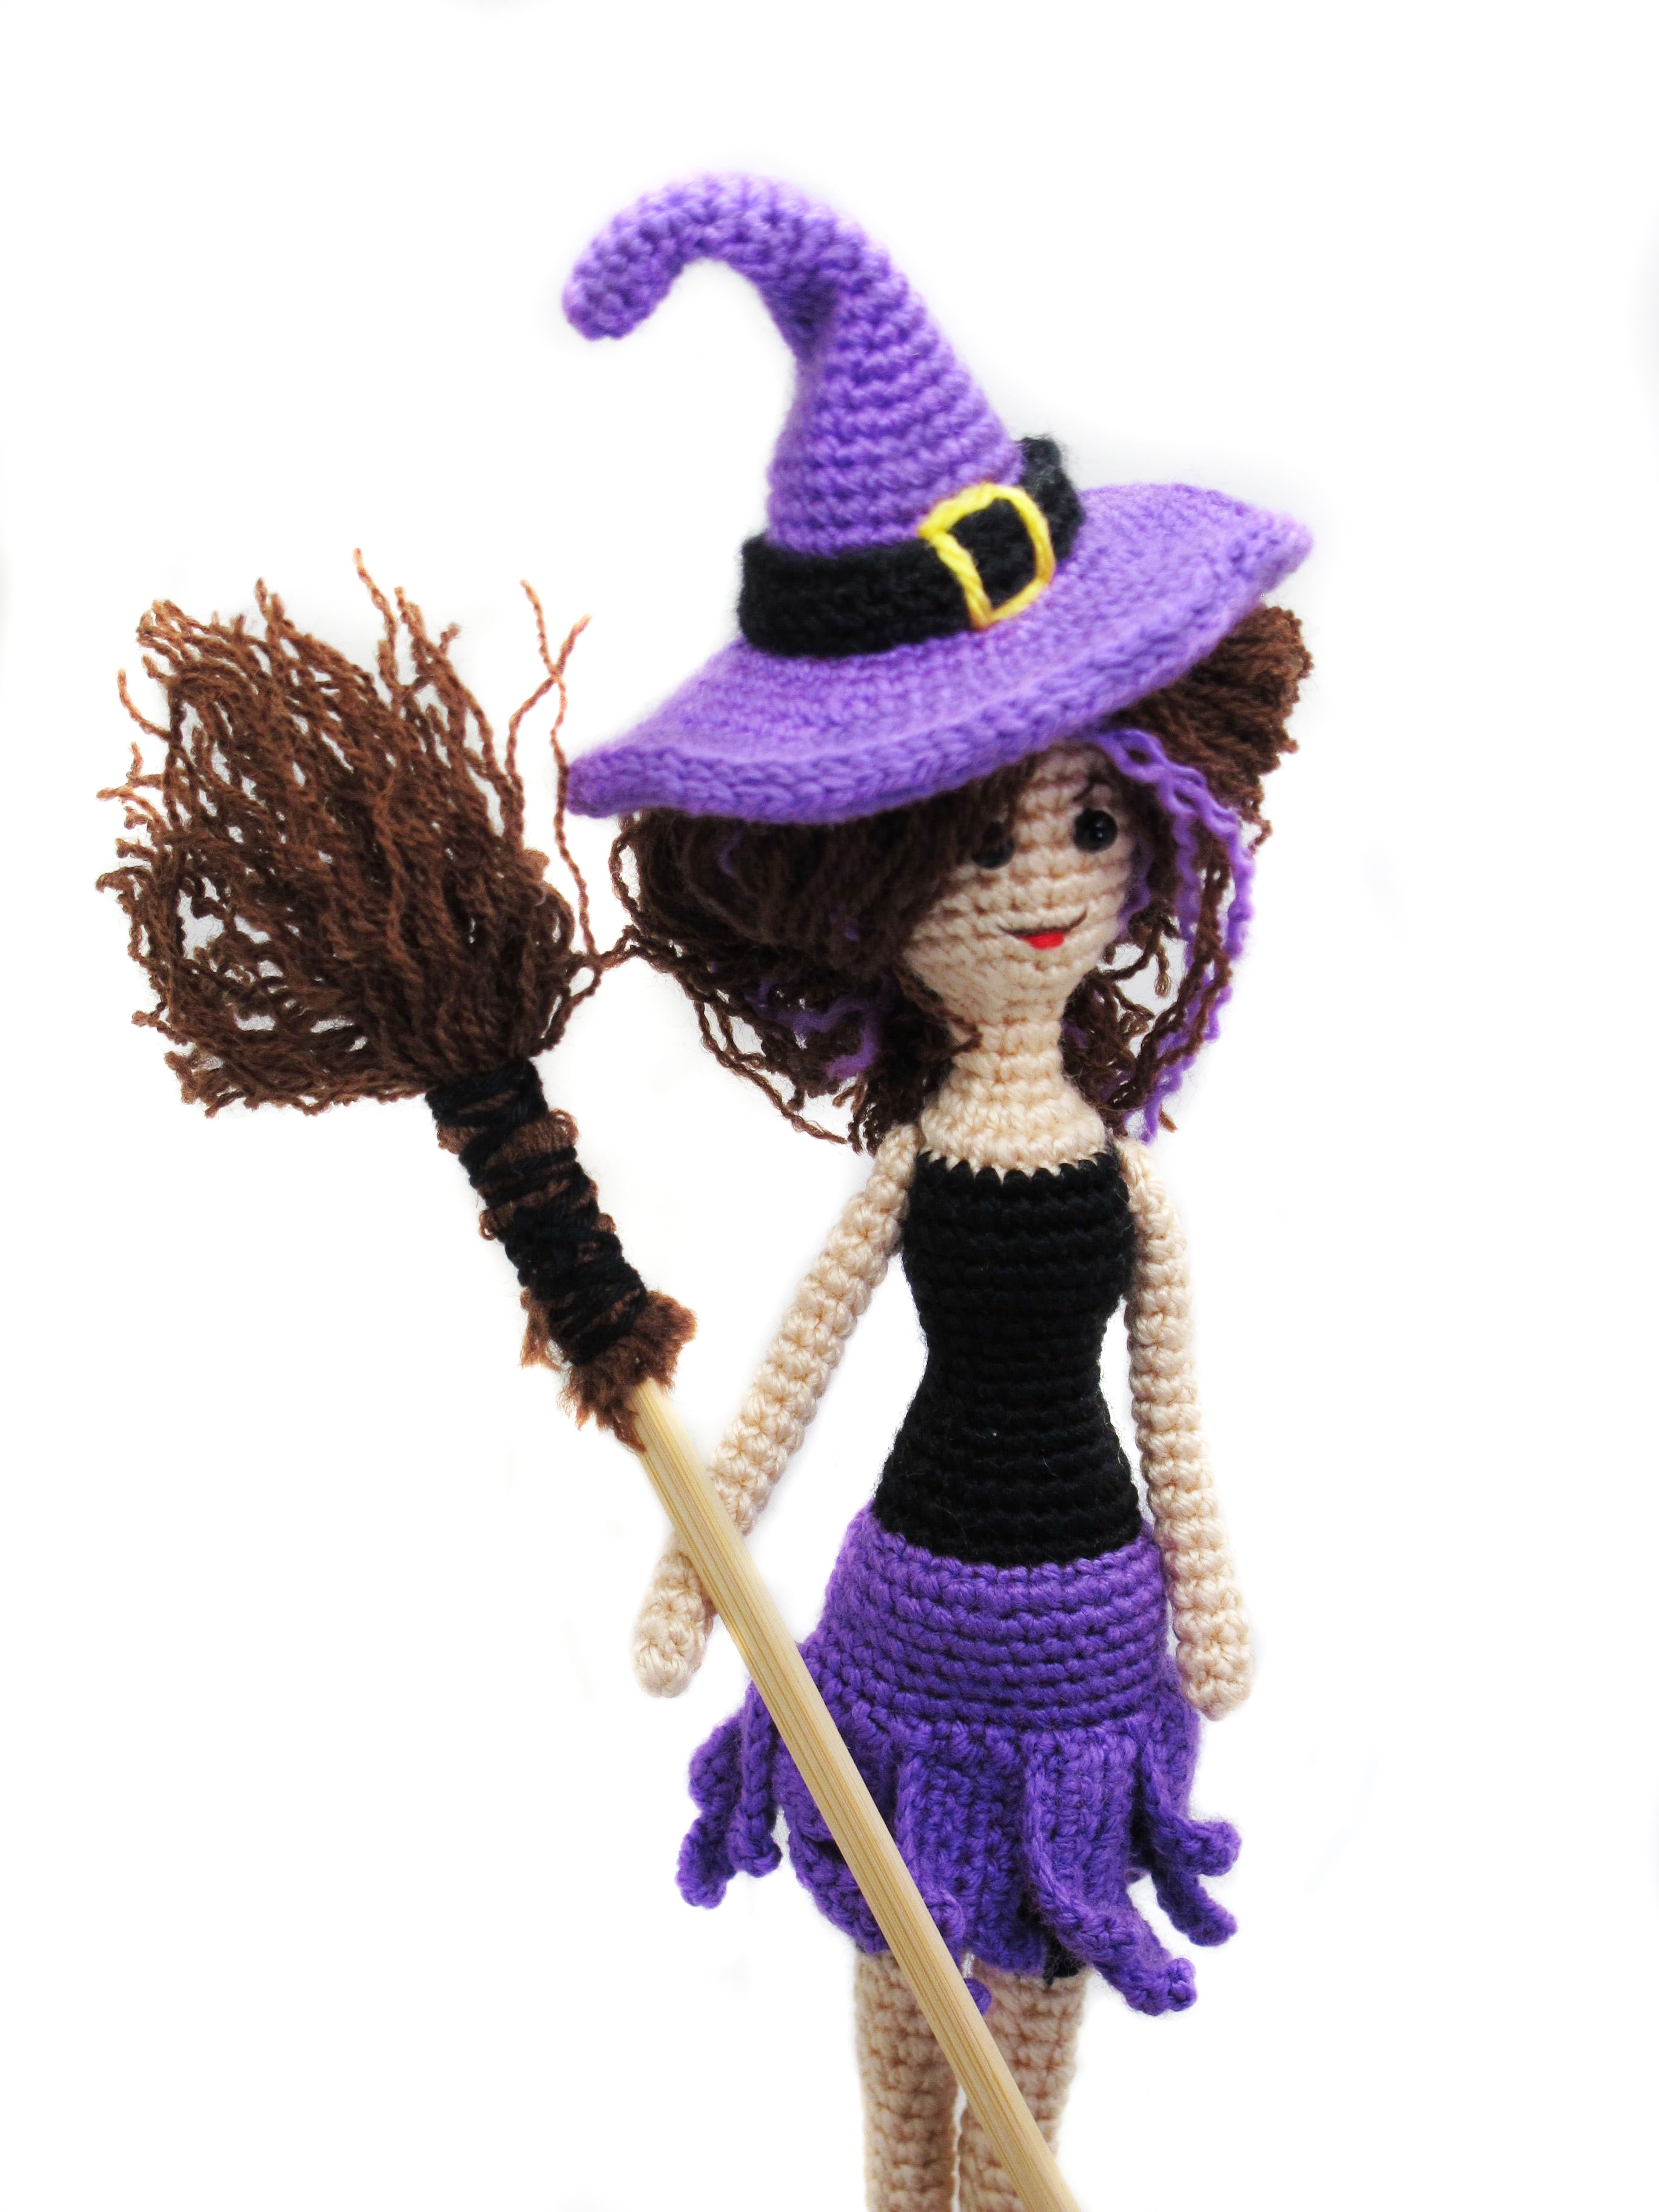 crochet toy amigurumi doll pattern witch girl